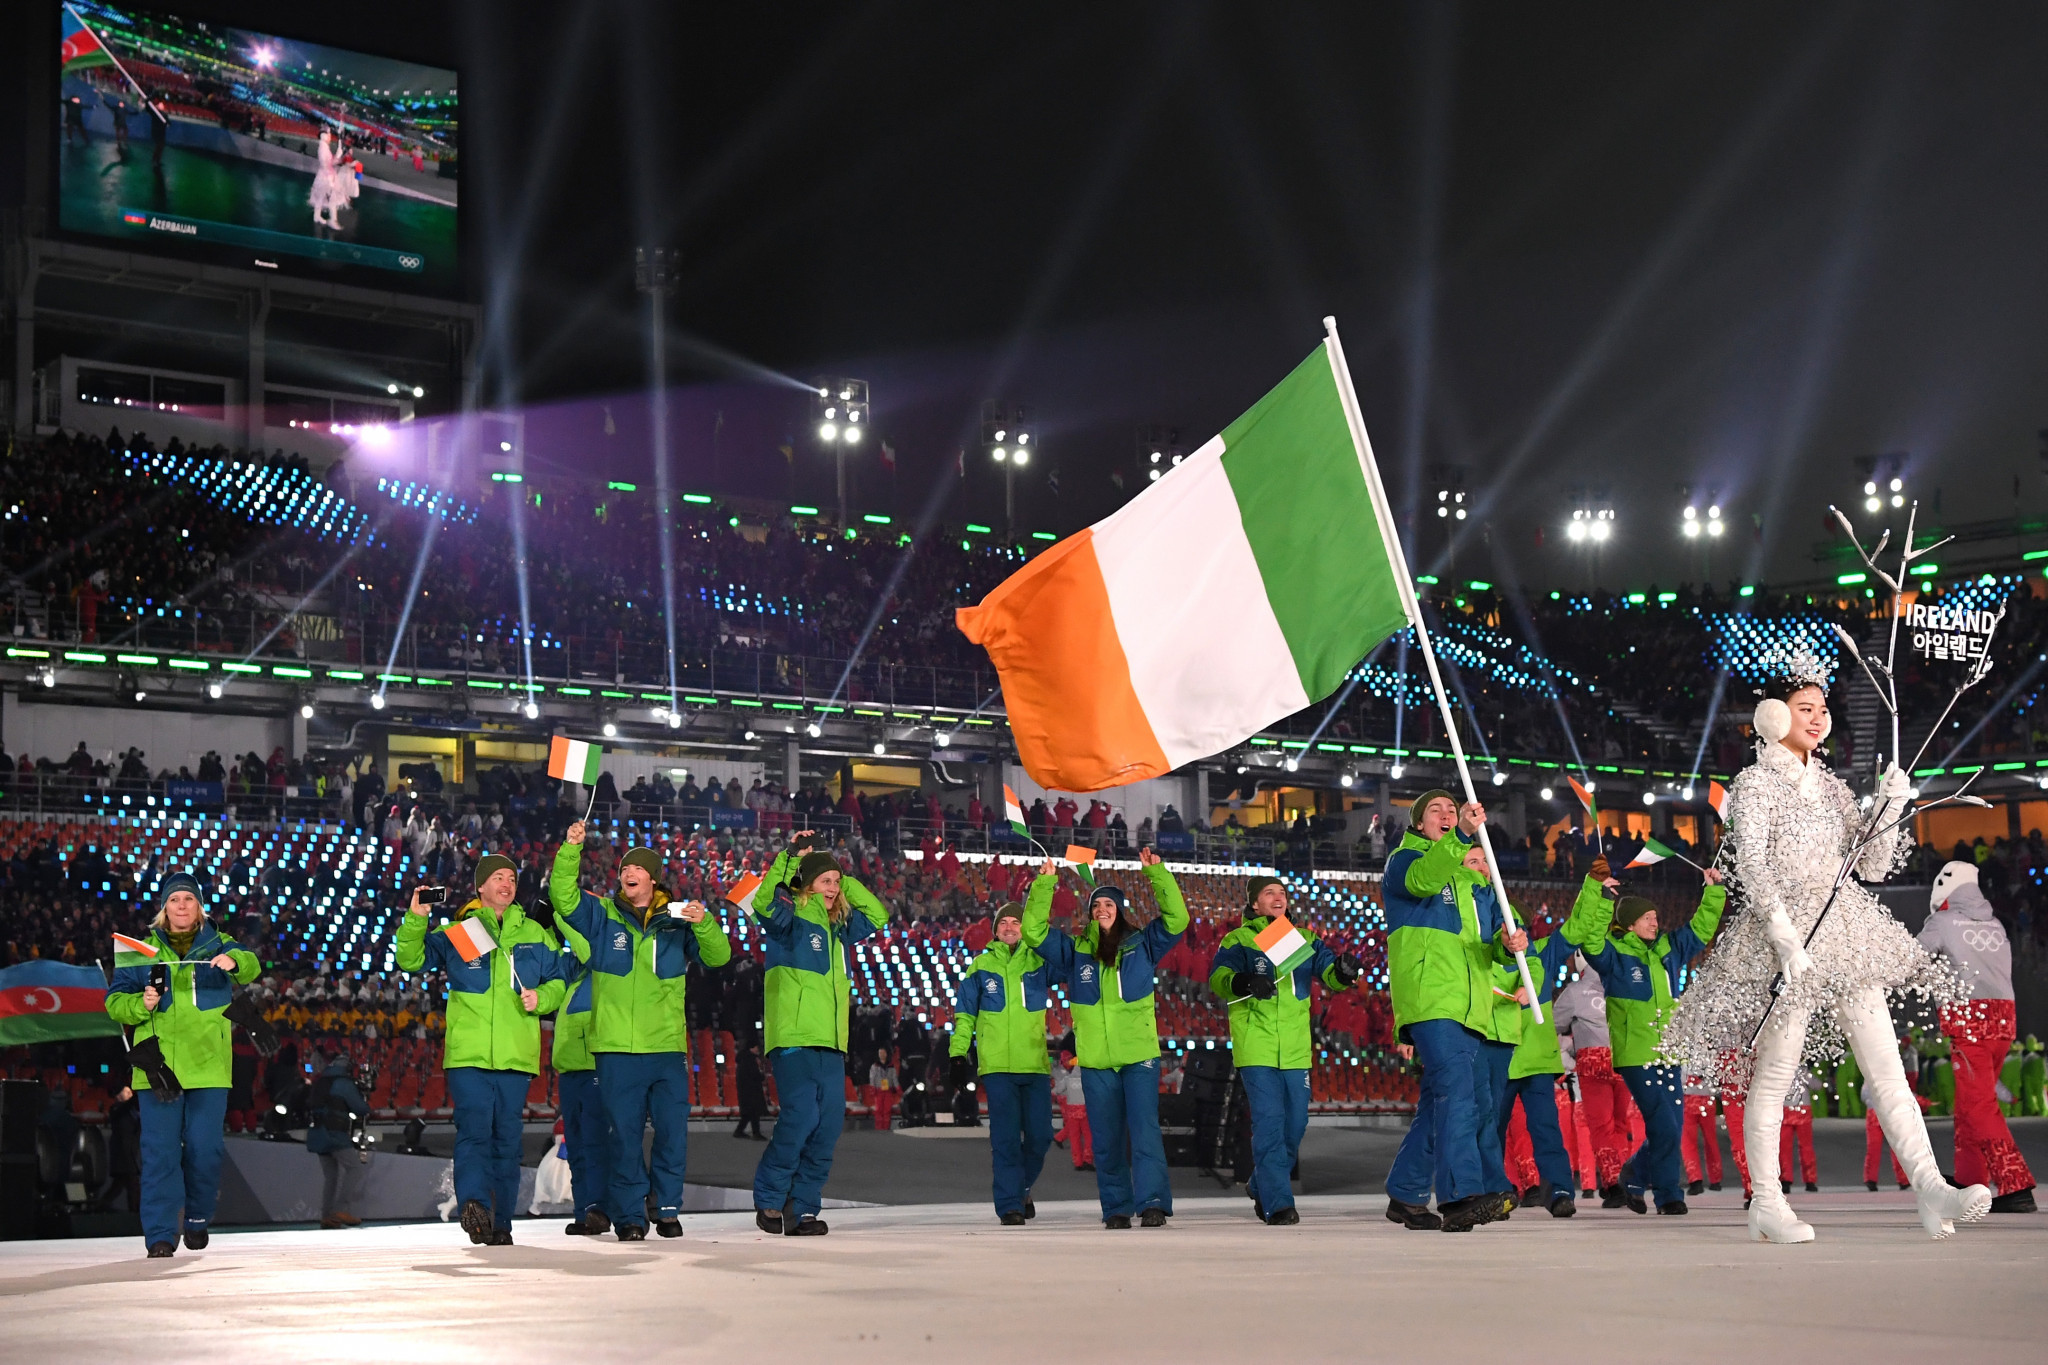 Olympic Federation of Ireland appoint performance support leads for Tokyo 2020